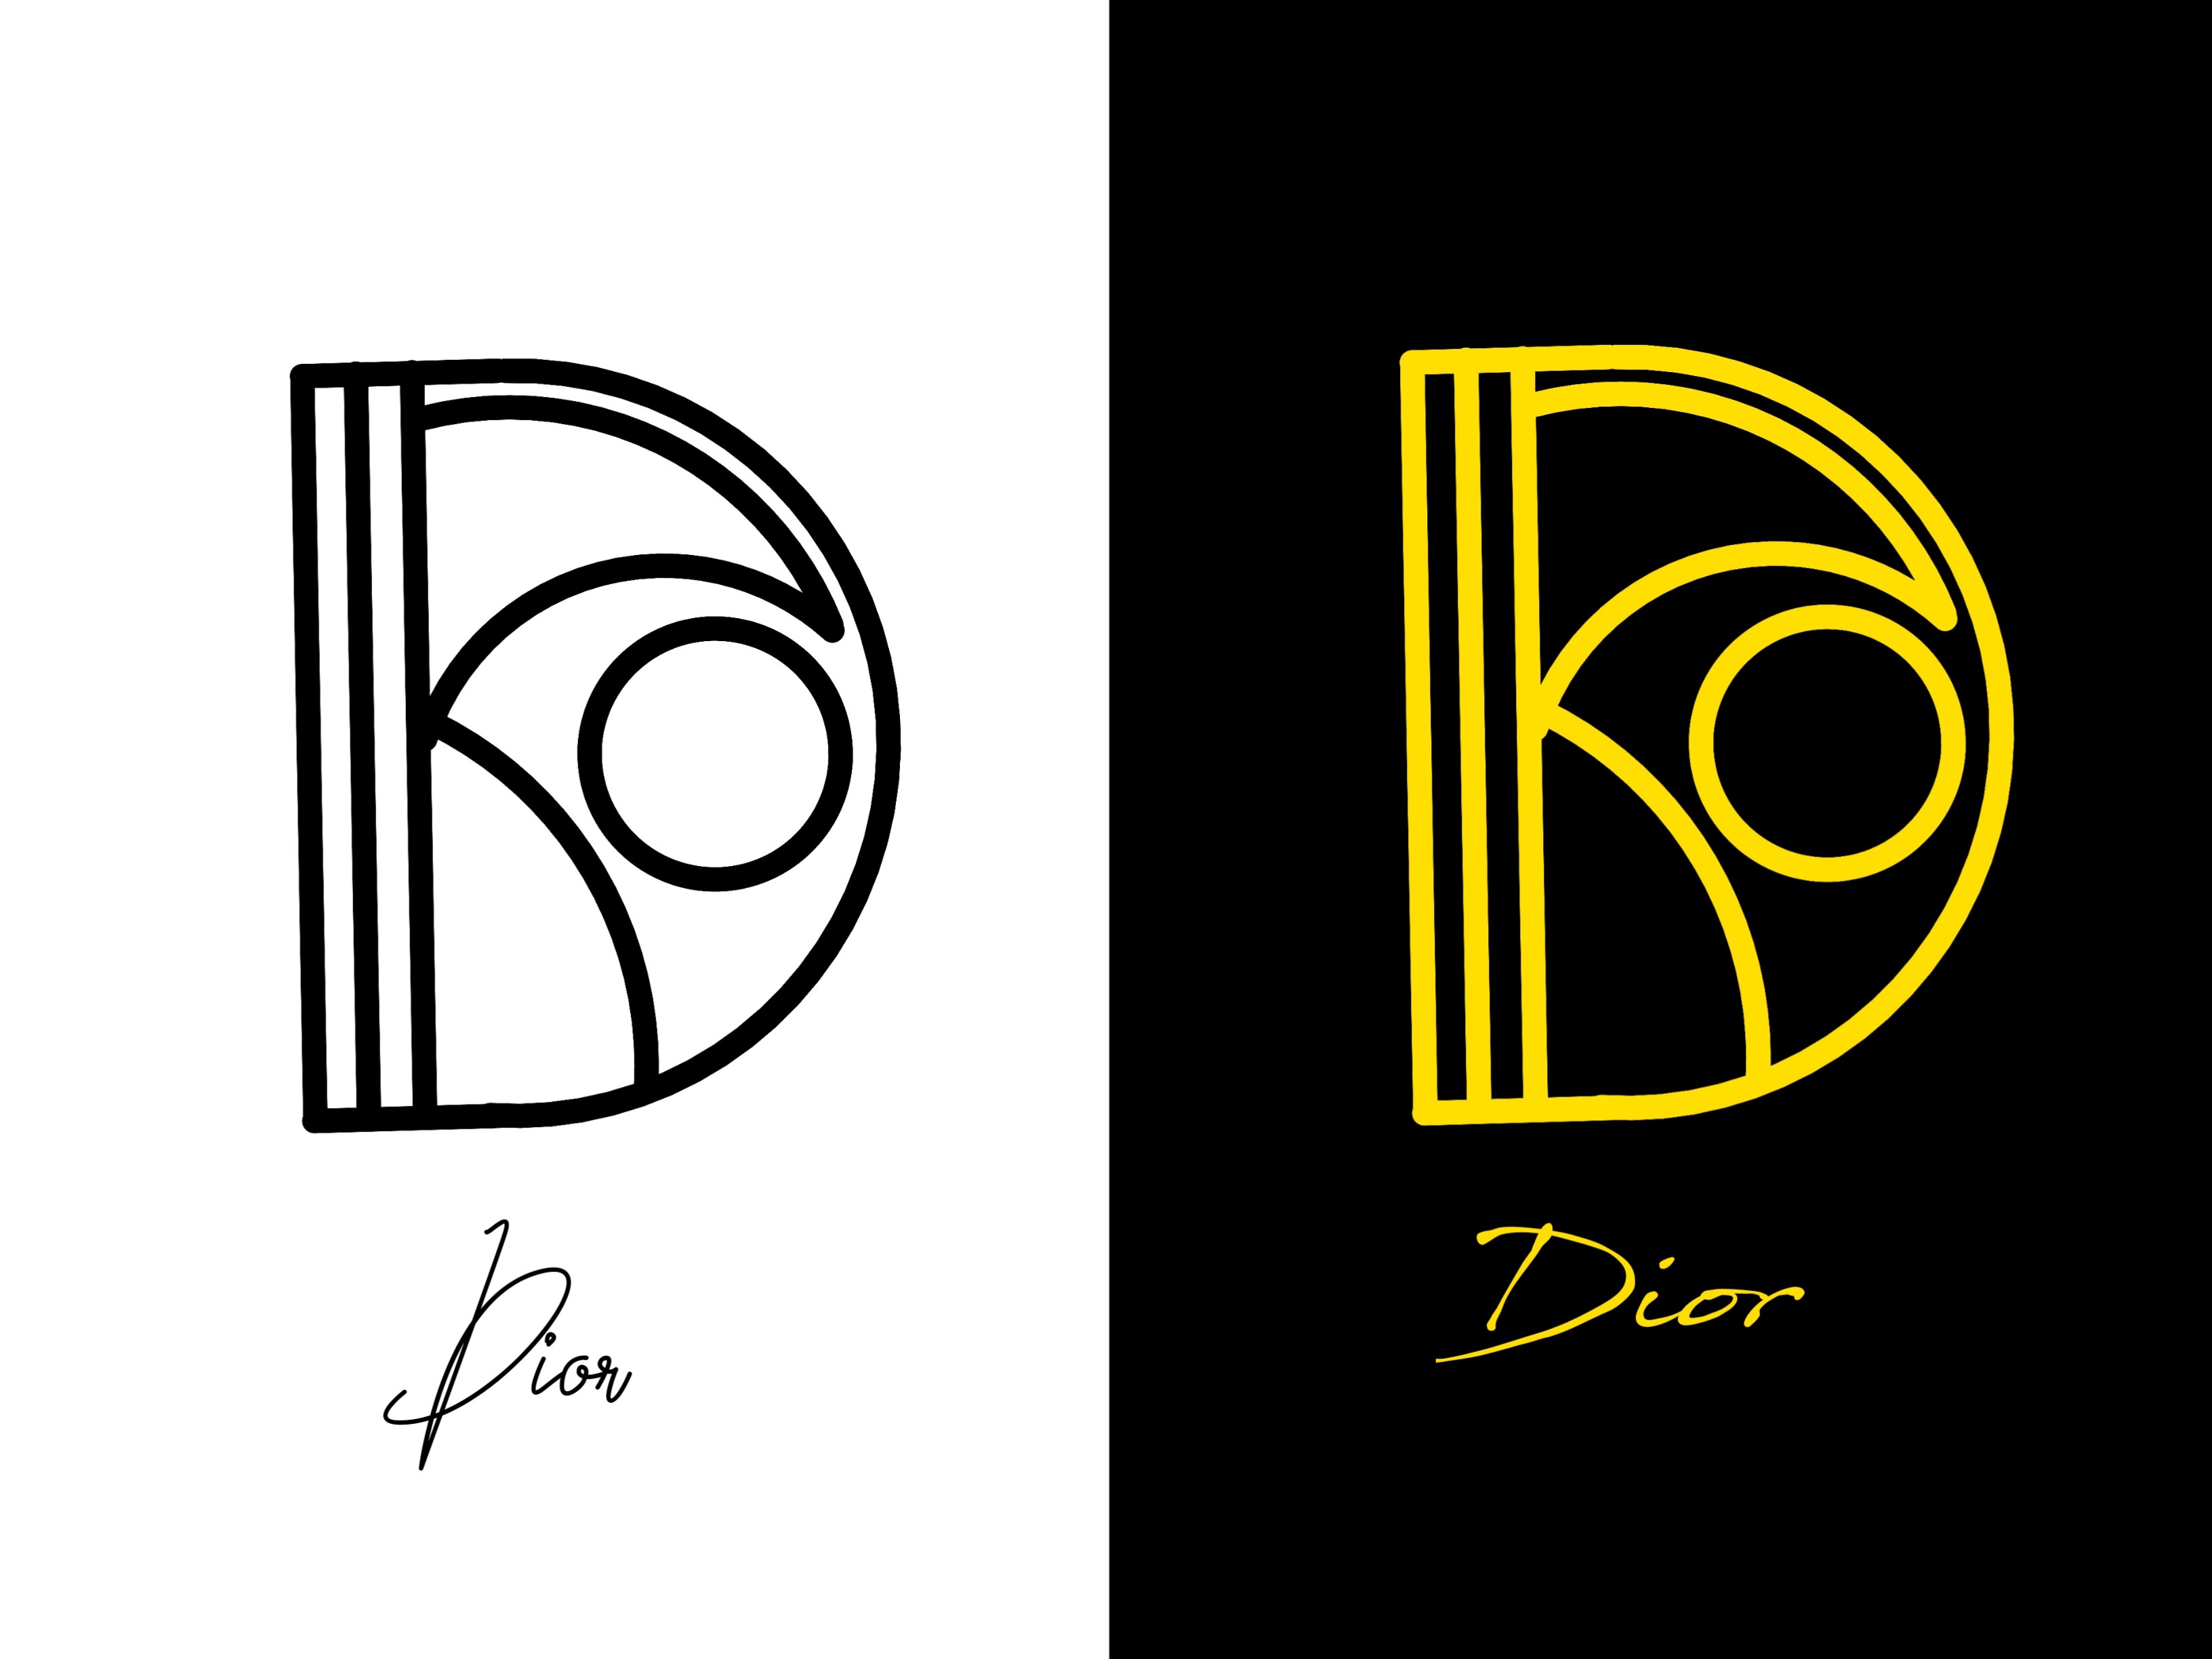 Create a design logo from your name or brand